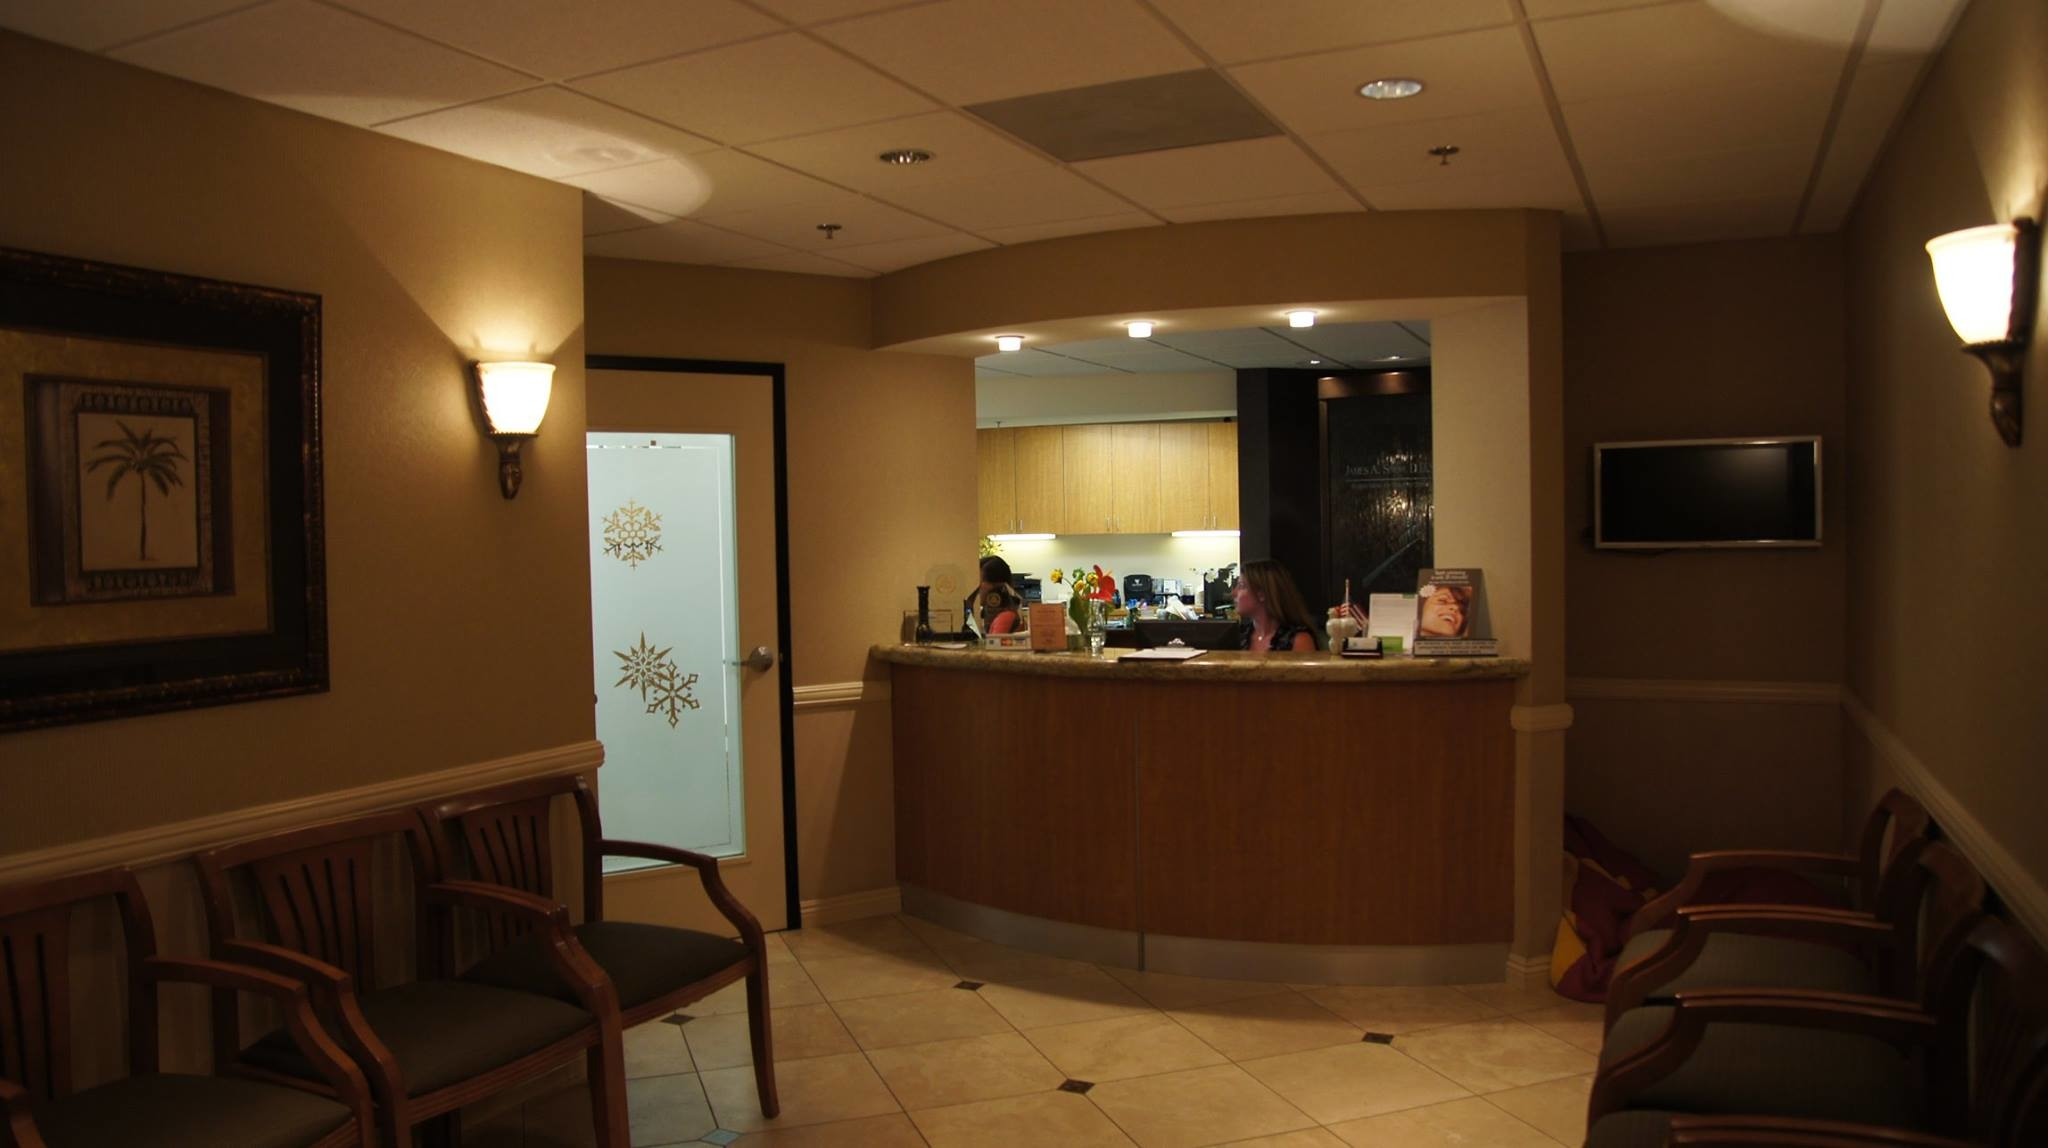 Pacific Dental Center image 5